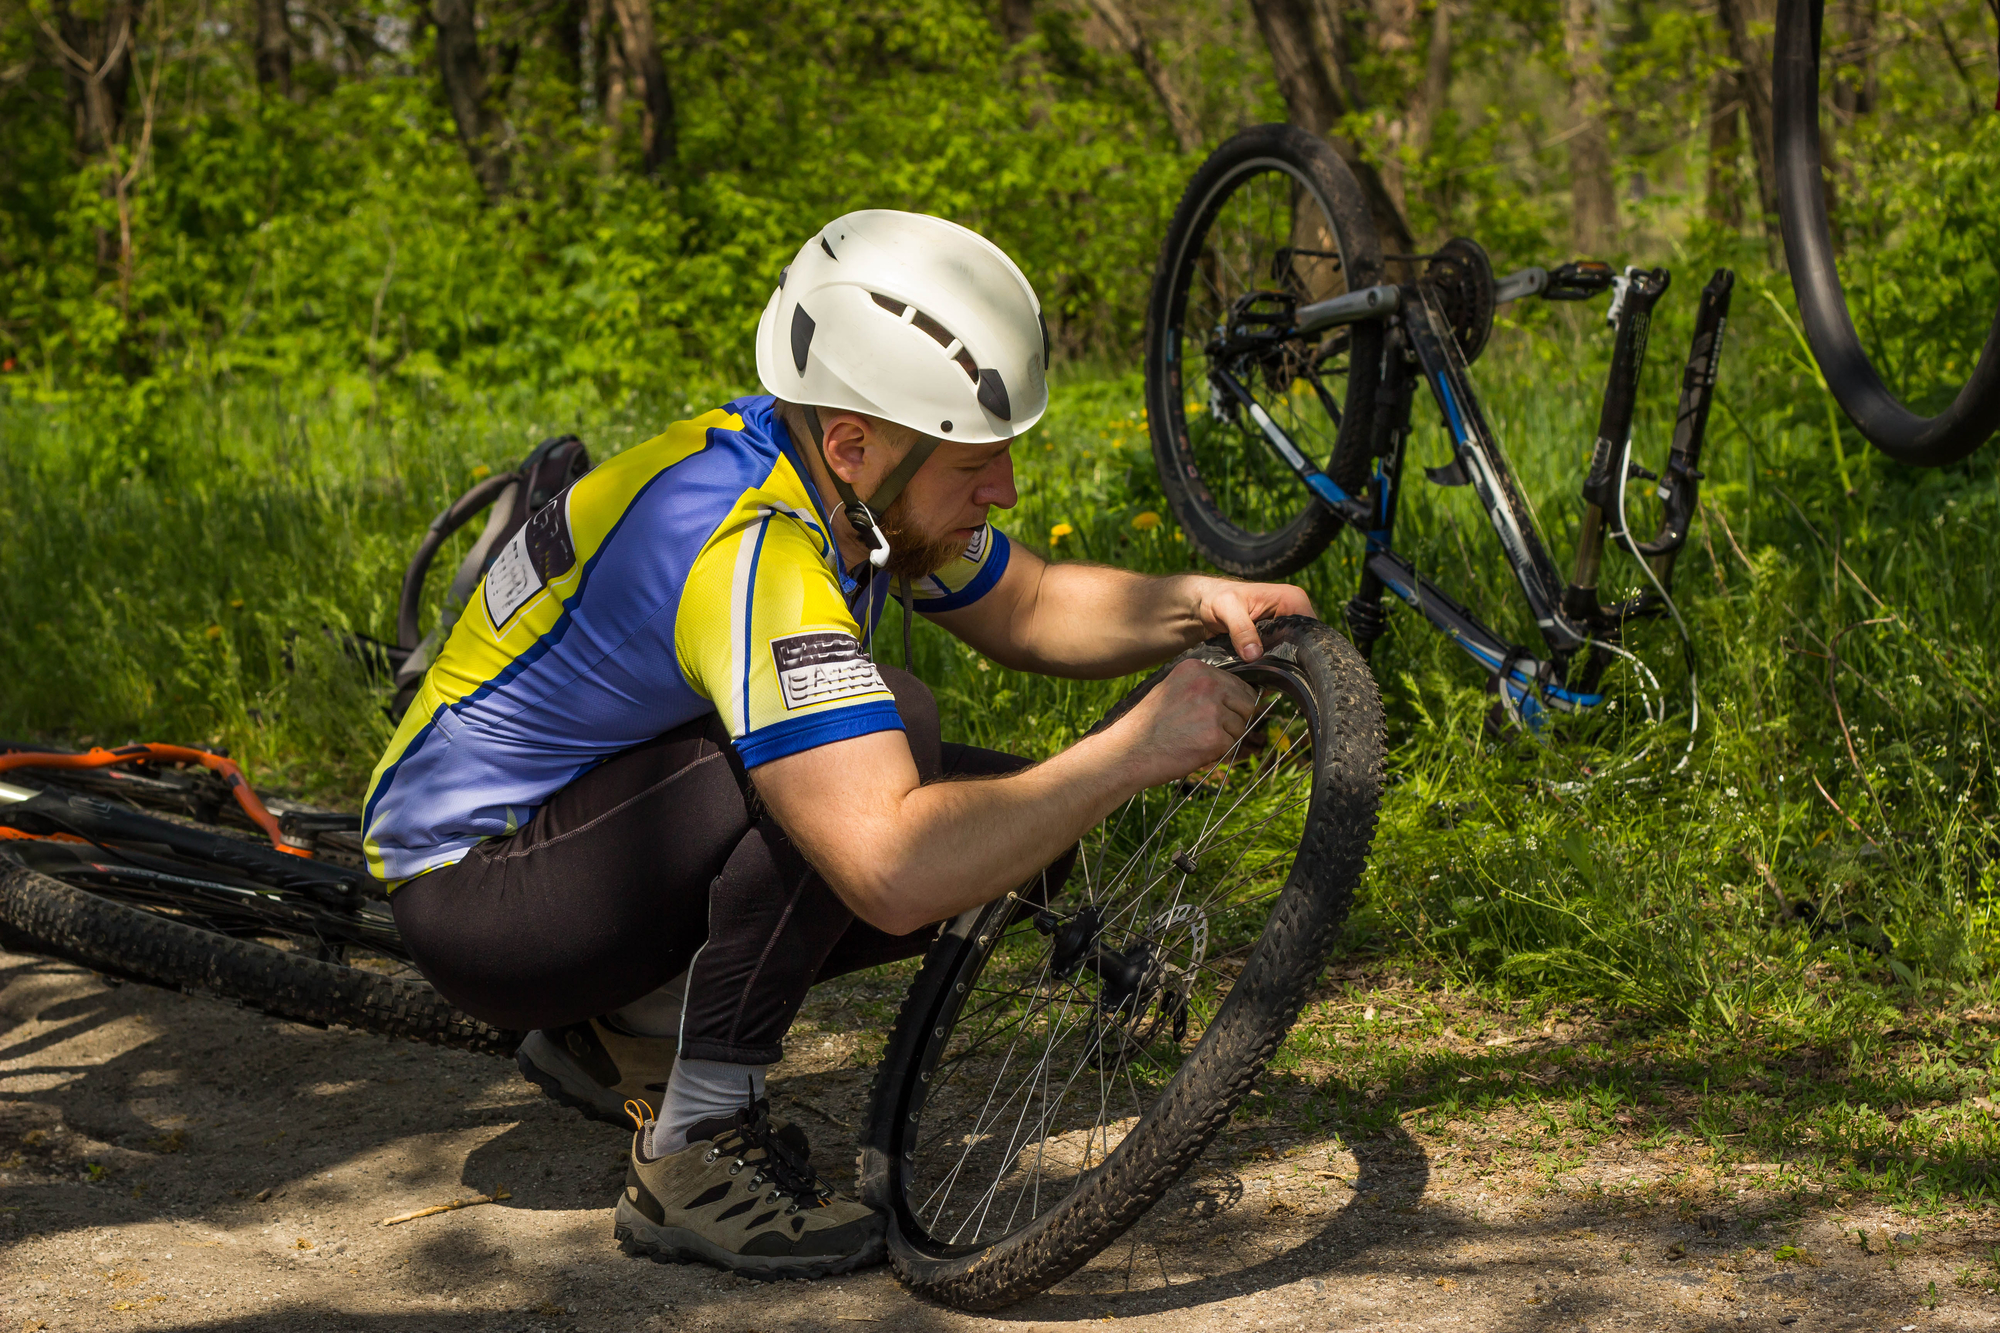 changing tire on bike